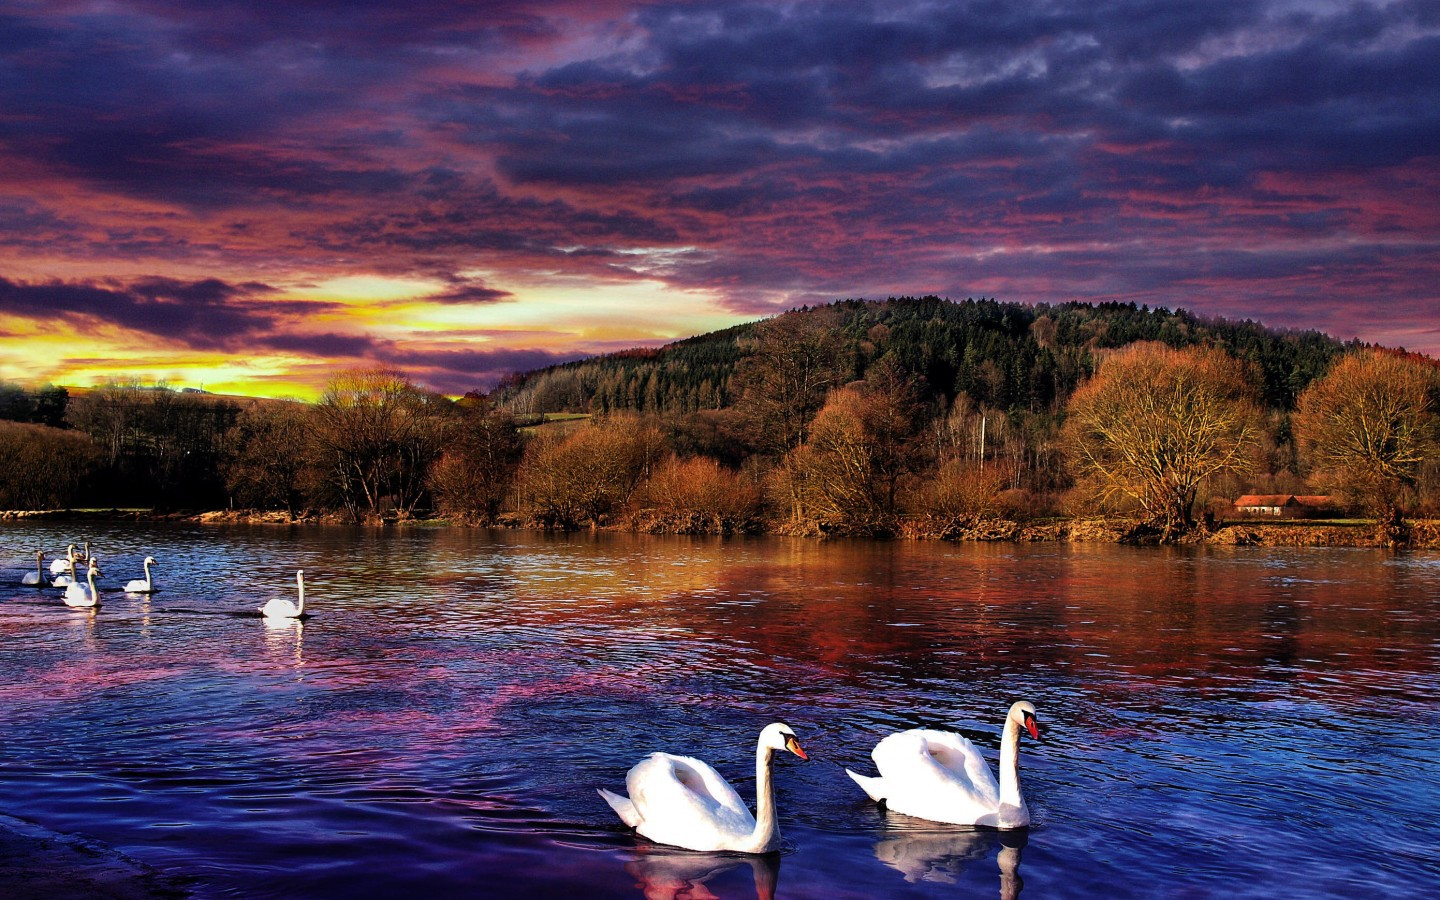 34484 download wallpaper Animals, Birds, Swans screensavers and pictures for free